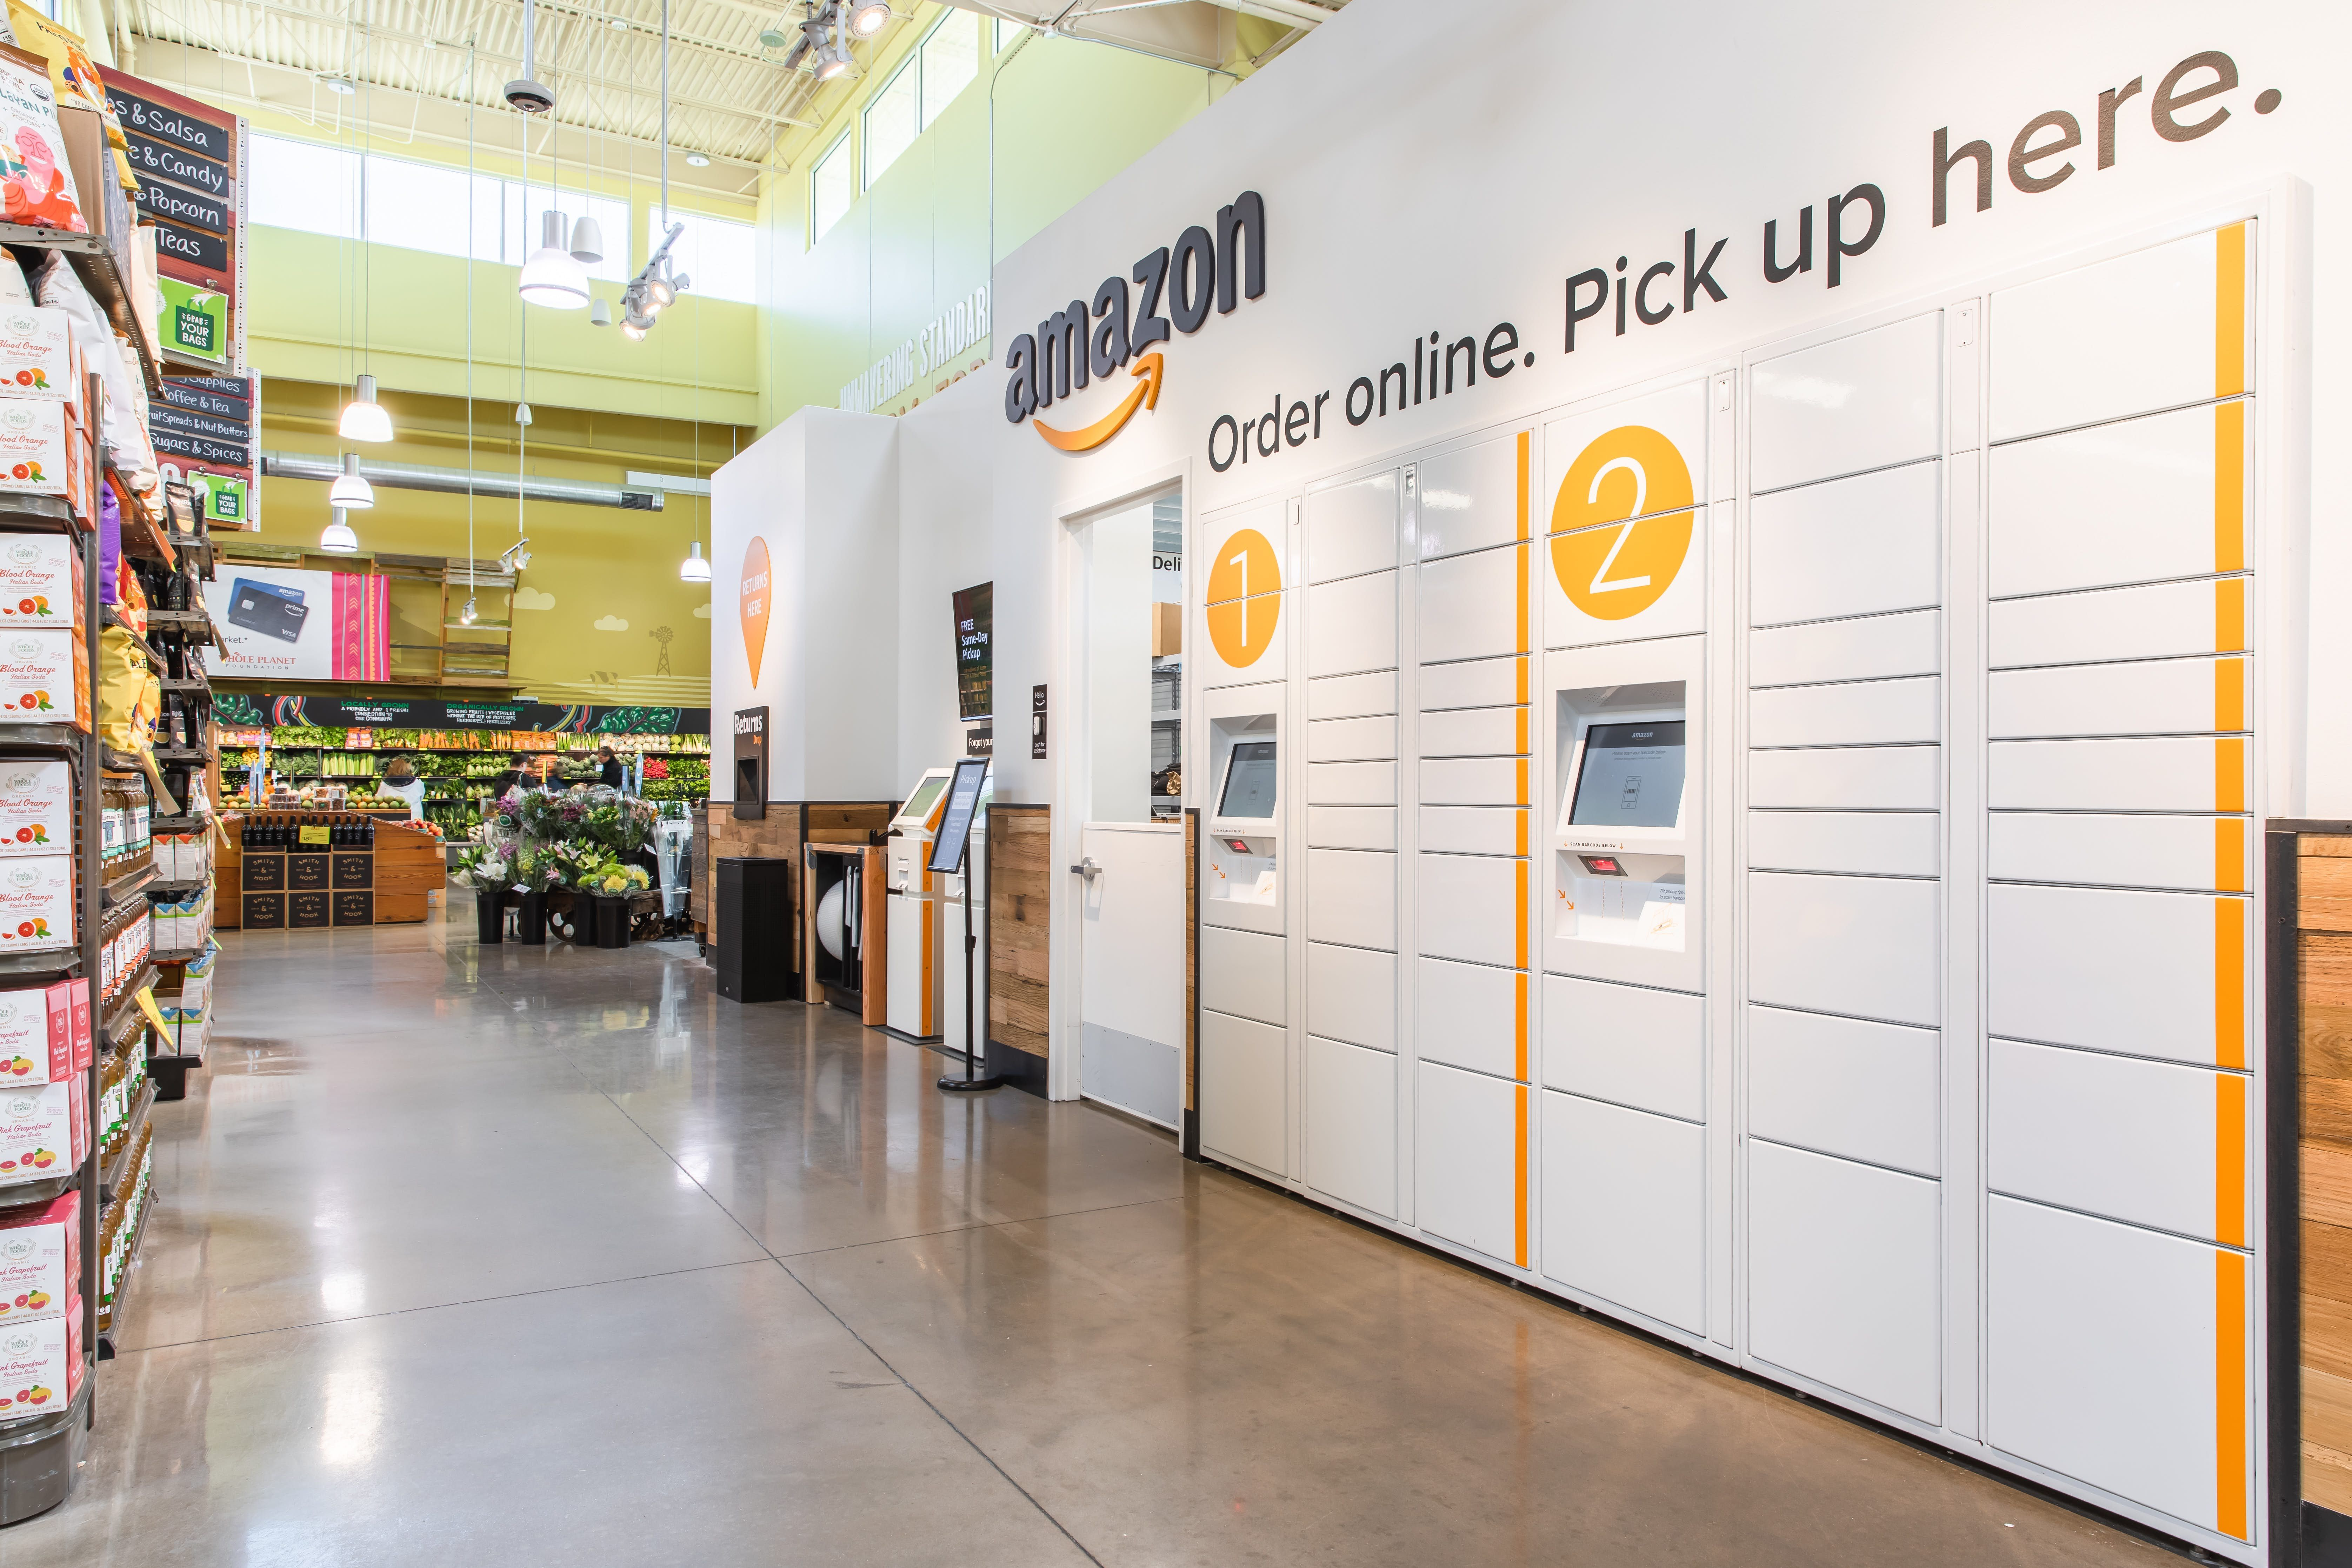 Got an Amazon package? A local Whole Foods has new way for